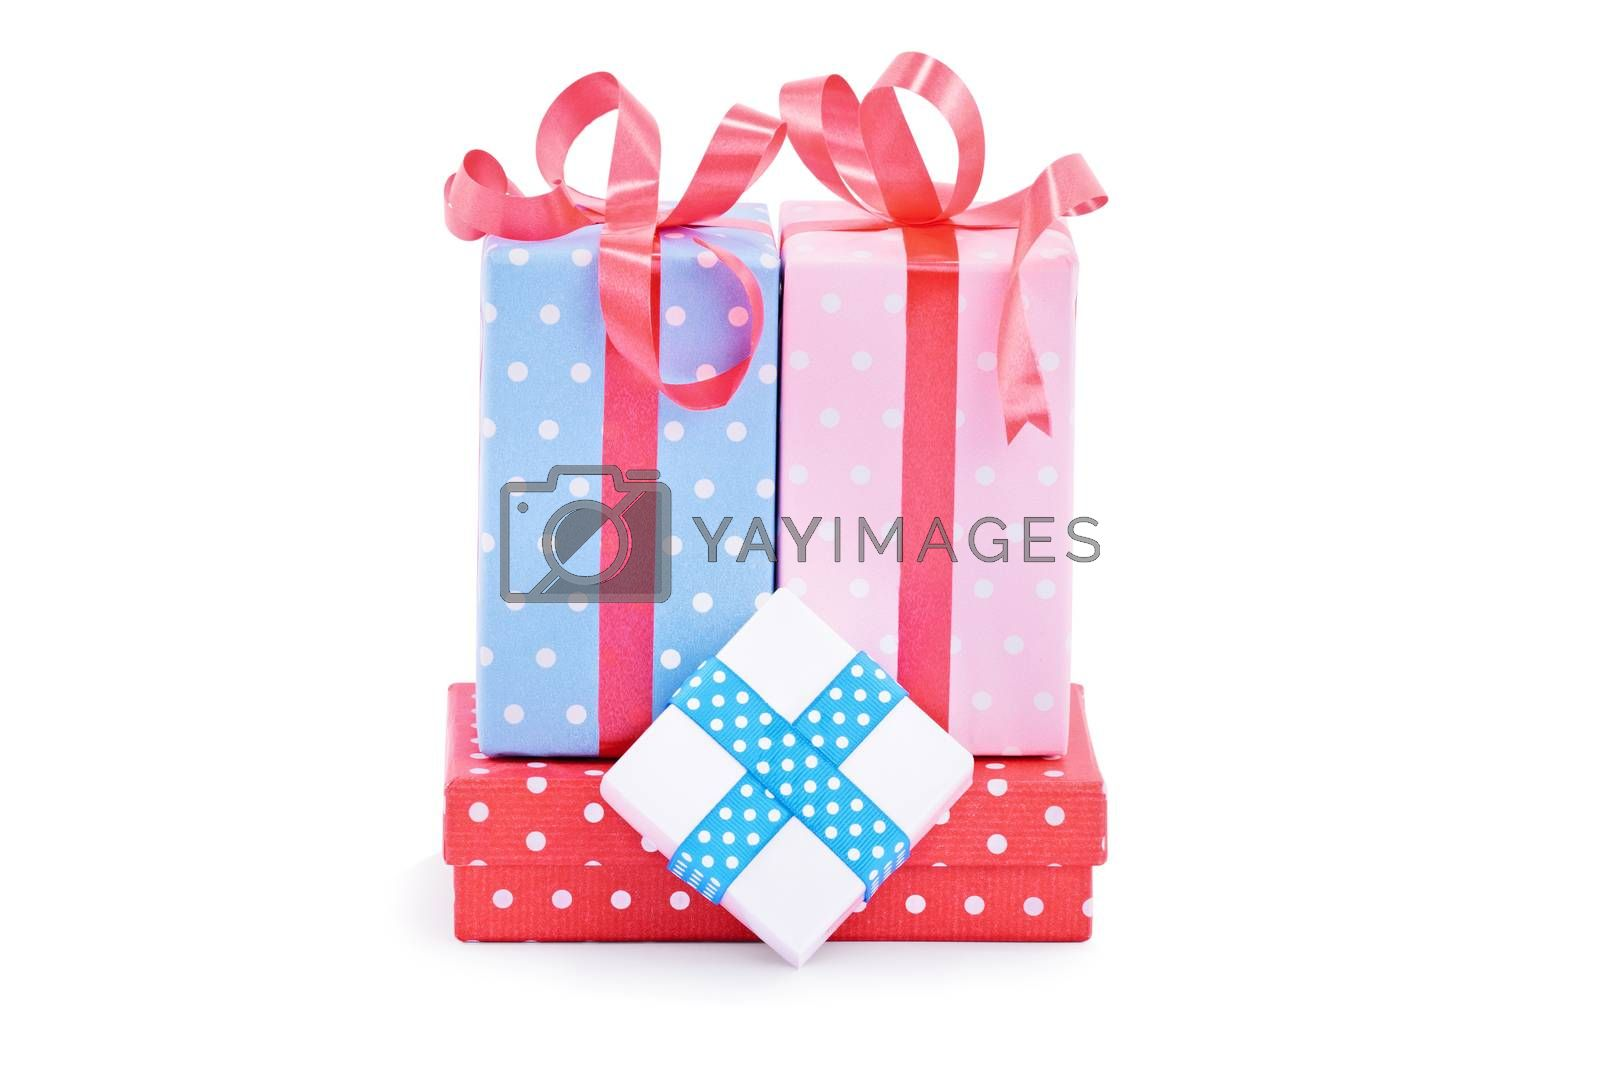 Pile of gifts, wrapped in cute wrapping paper and ribbons, isolated on white background. Christmas, New Year, anniversary, birthday, Valentine's Day concept.